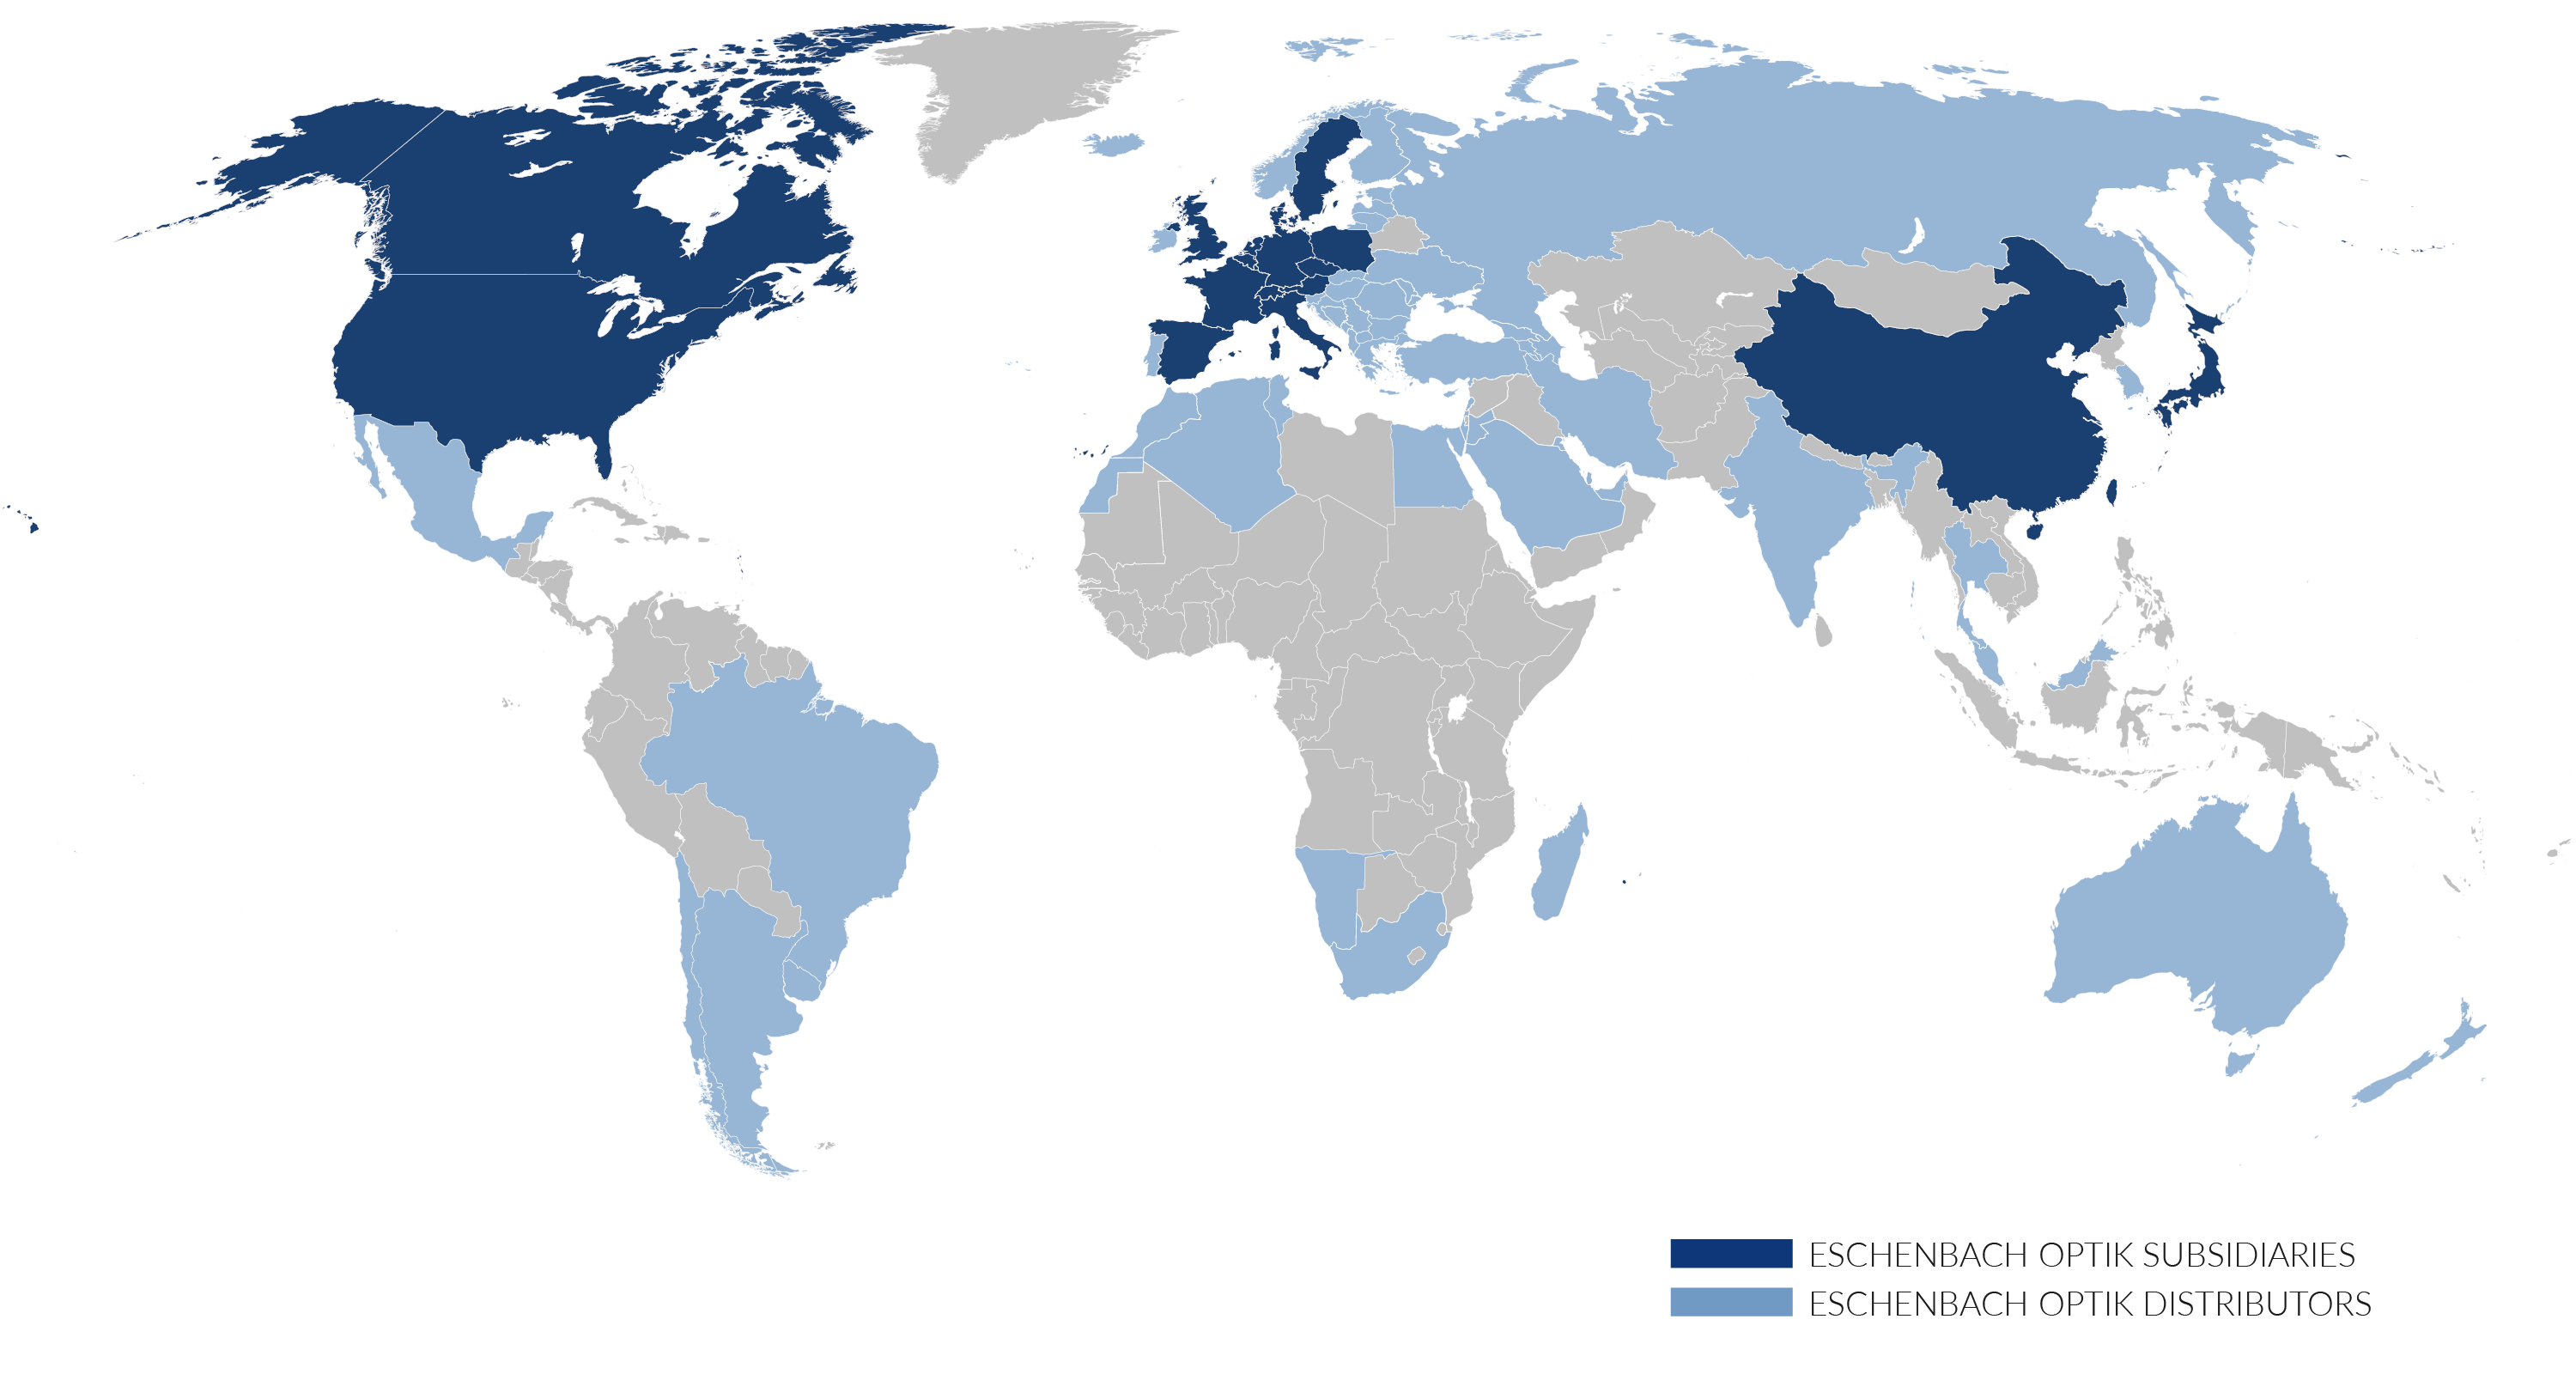 ESCHENBACH LOCATIONS WORLDWIDE